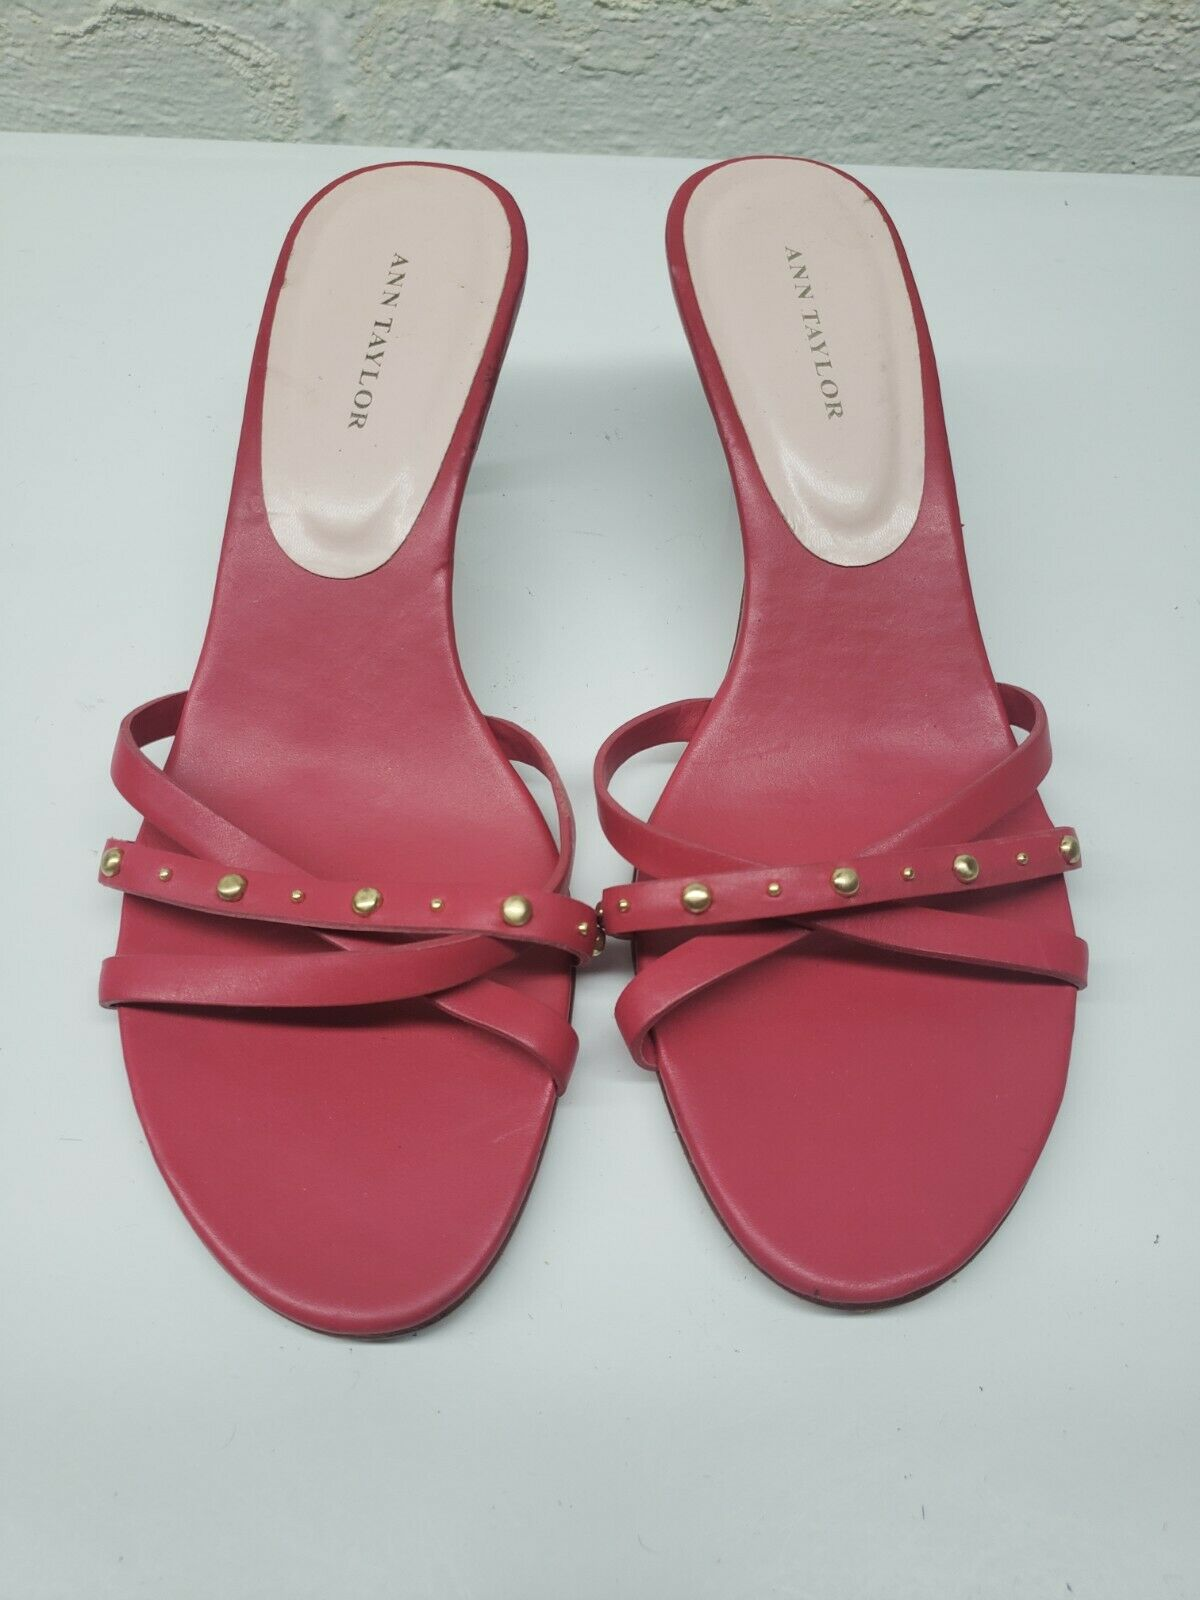 Ann Taylor Womens Leather Casual Open Toe Slip On Coral Strappy Sandals Size 6 M